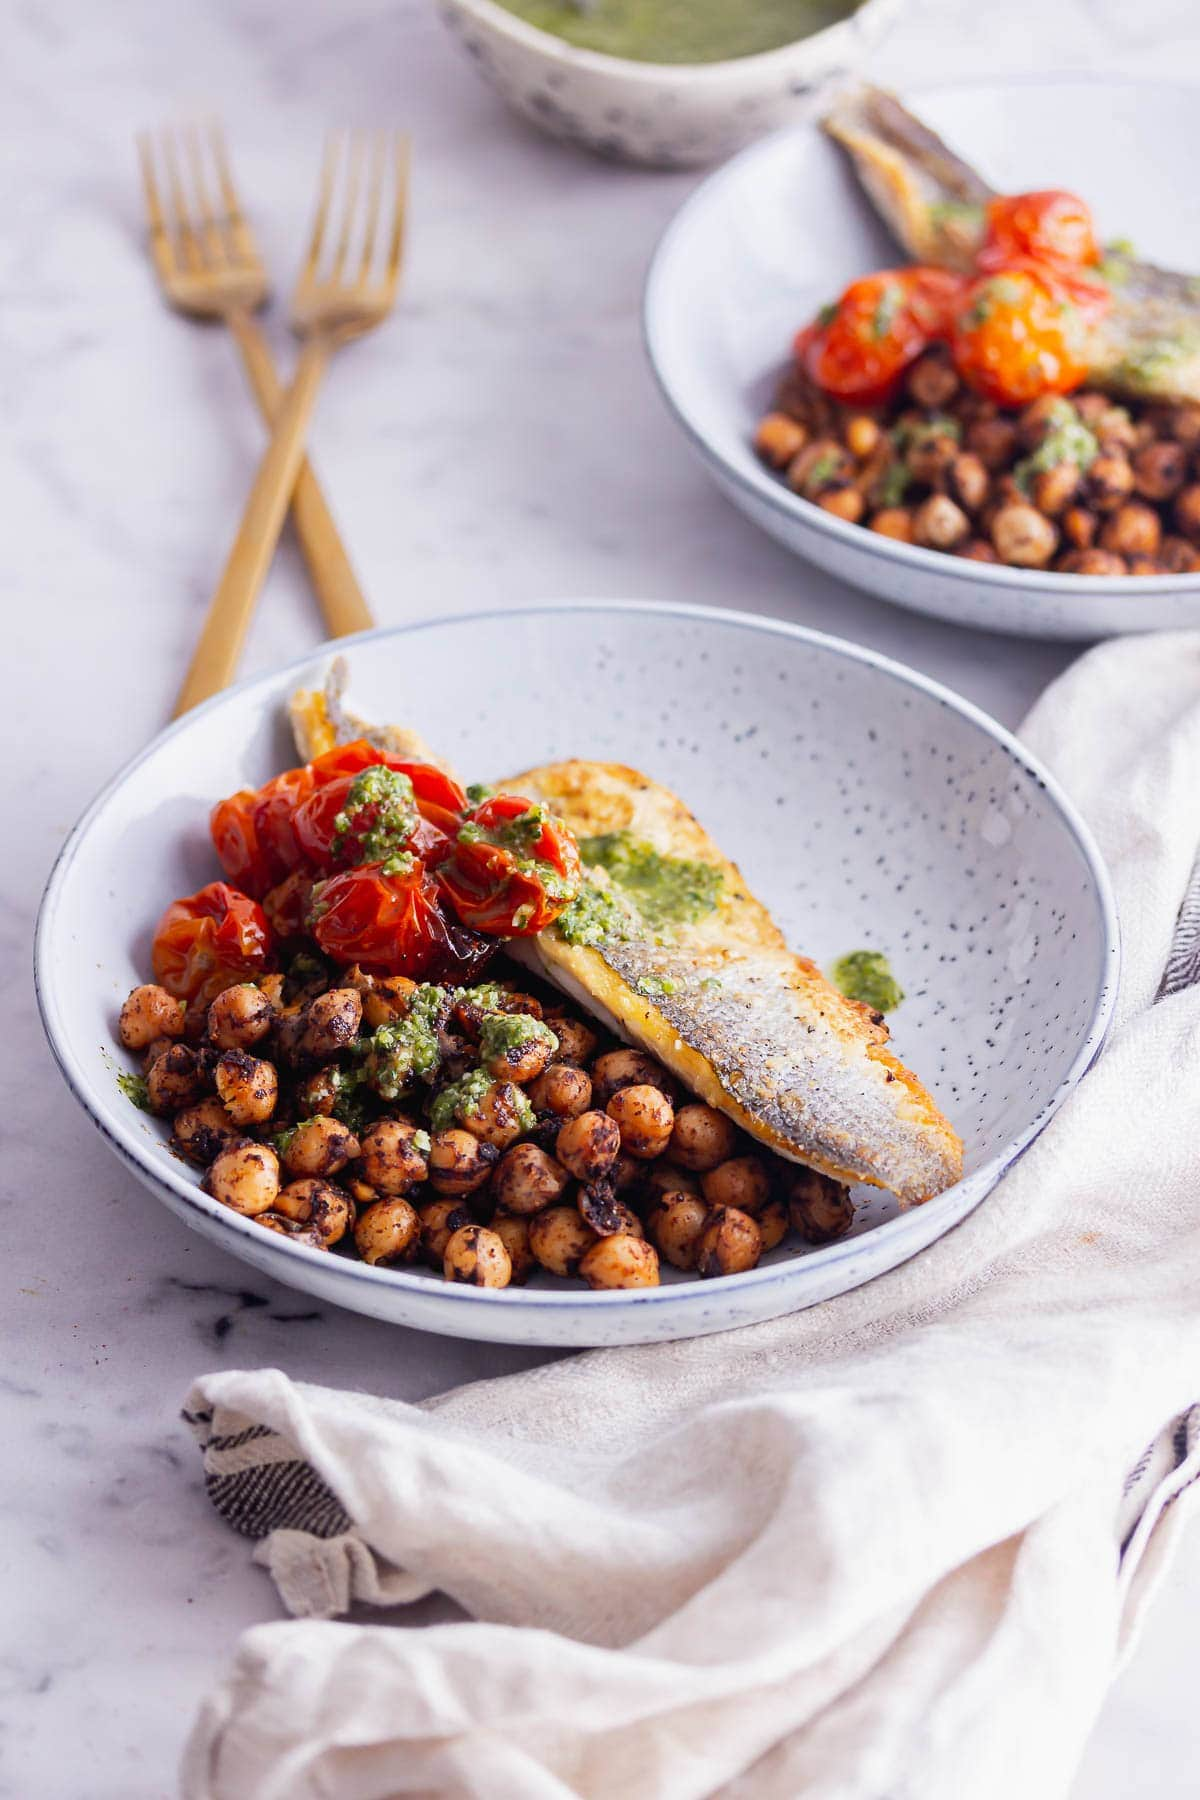 Blue bowl of sea bass and chickpeas with a cloth and gold forks